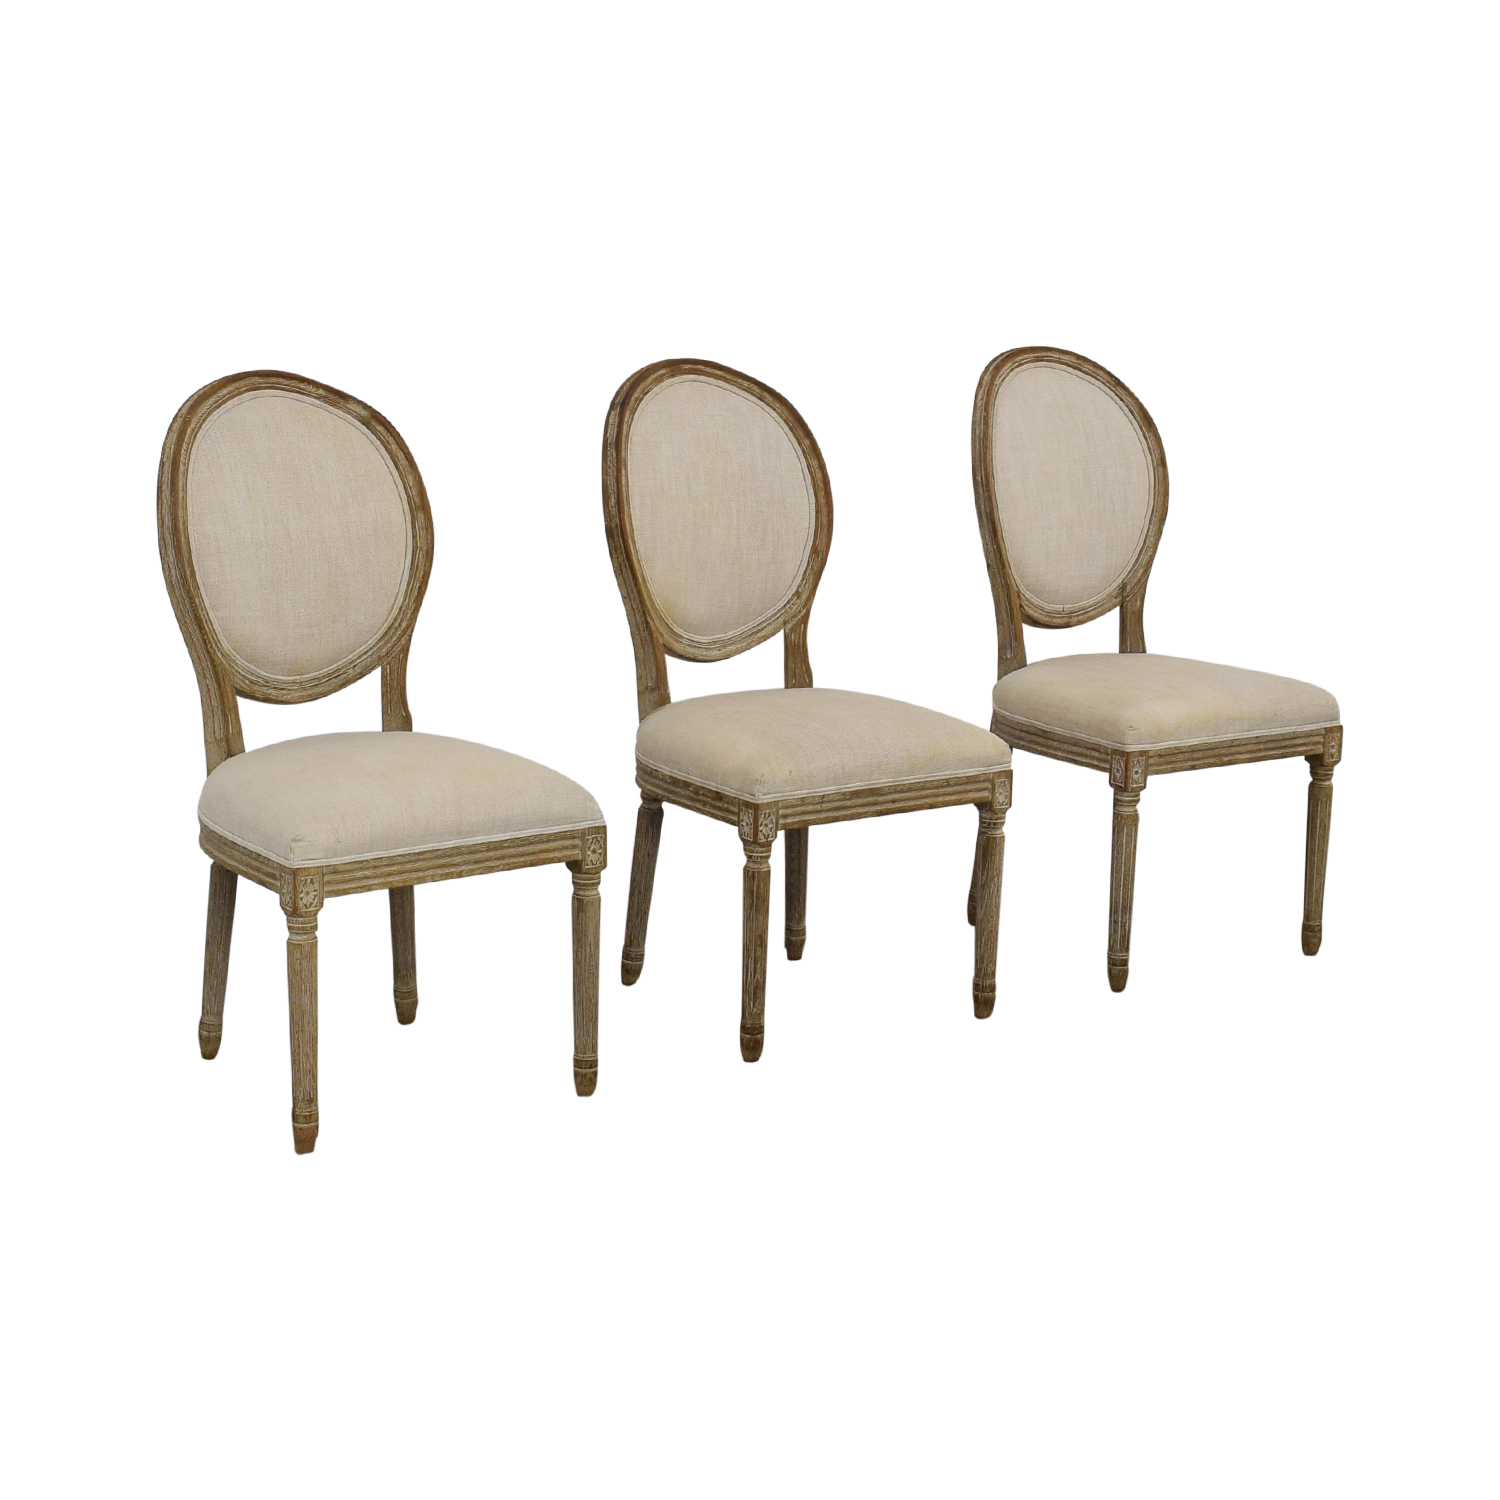 Restoration Hardware Vintage French Round Chair / Dining Chairs